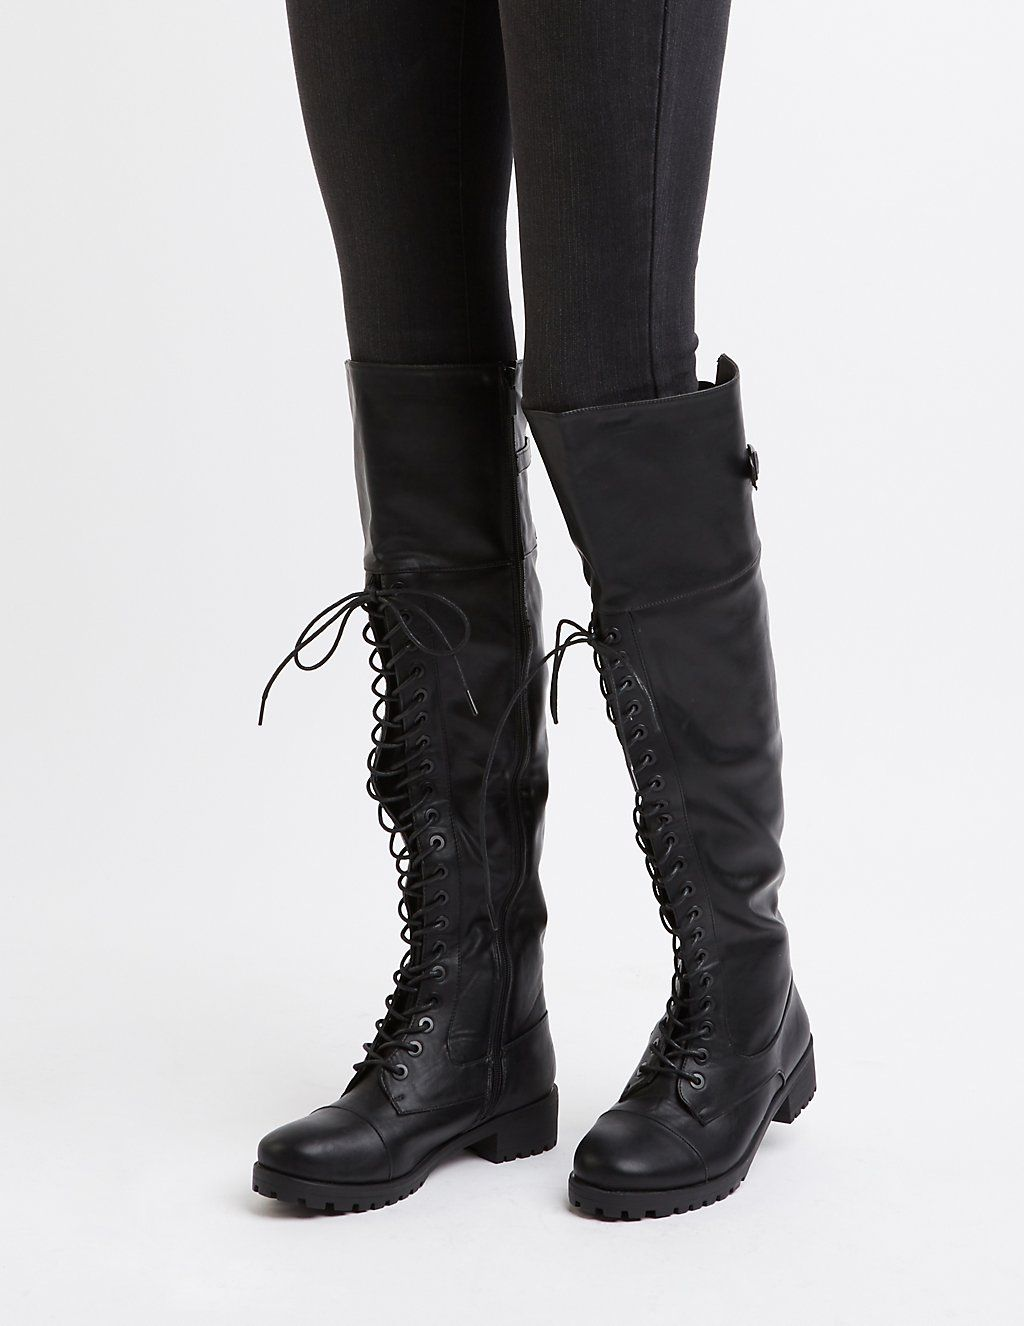 5873b1b09 Over-The-Knee Combat Boots | Emery inspo | Combat boots, Thigh high ...